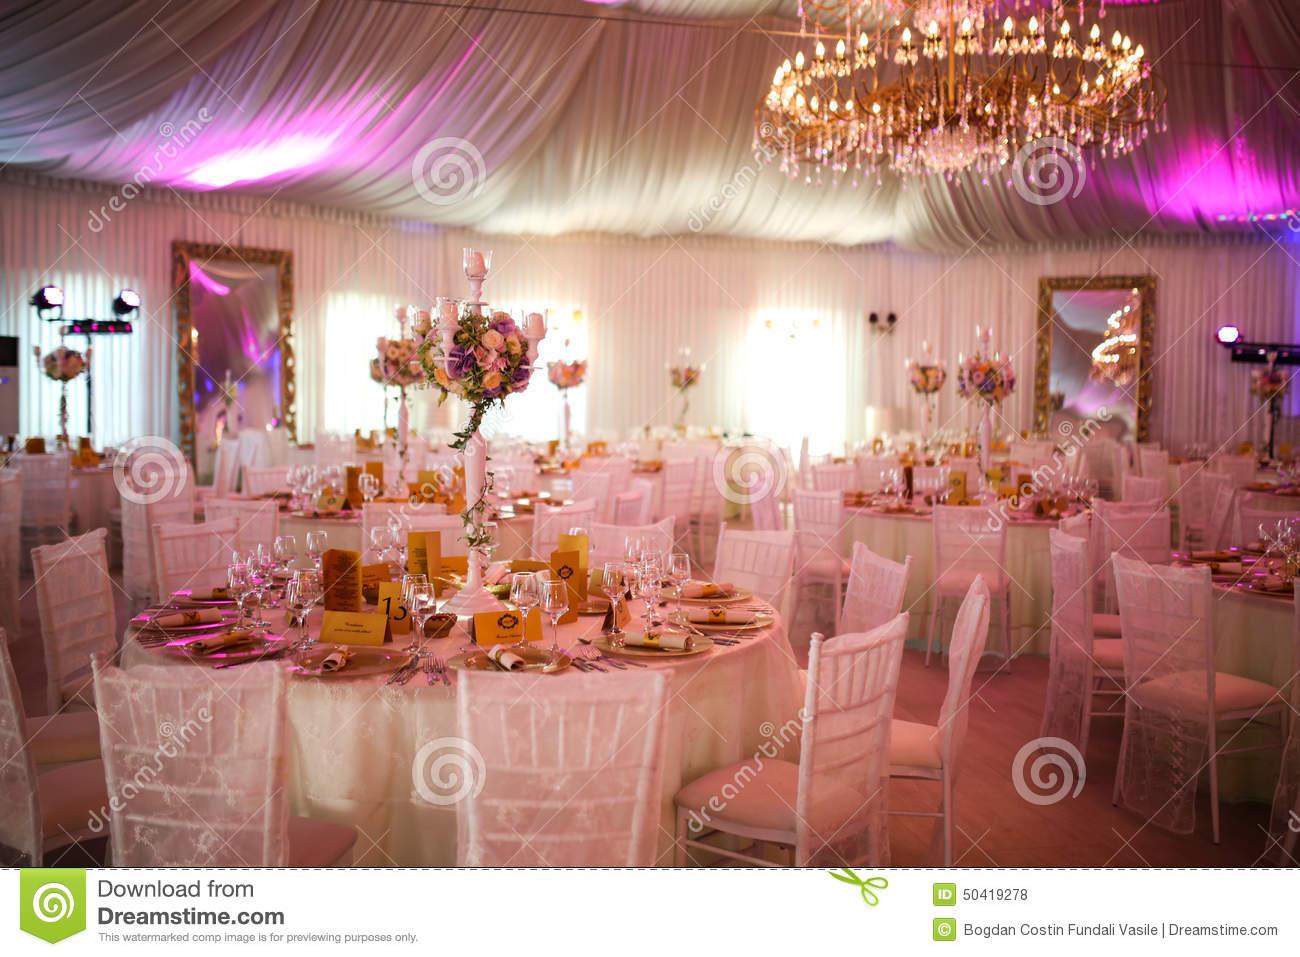 2 chair dining set swing b&m interior of a luxury white wedding tent decoration ready for guests stock photo - image: 50419278